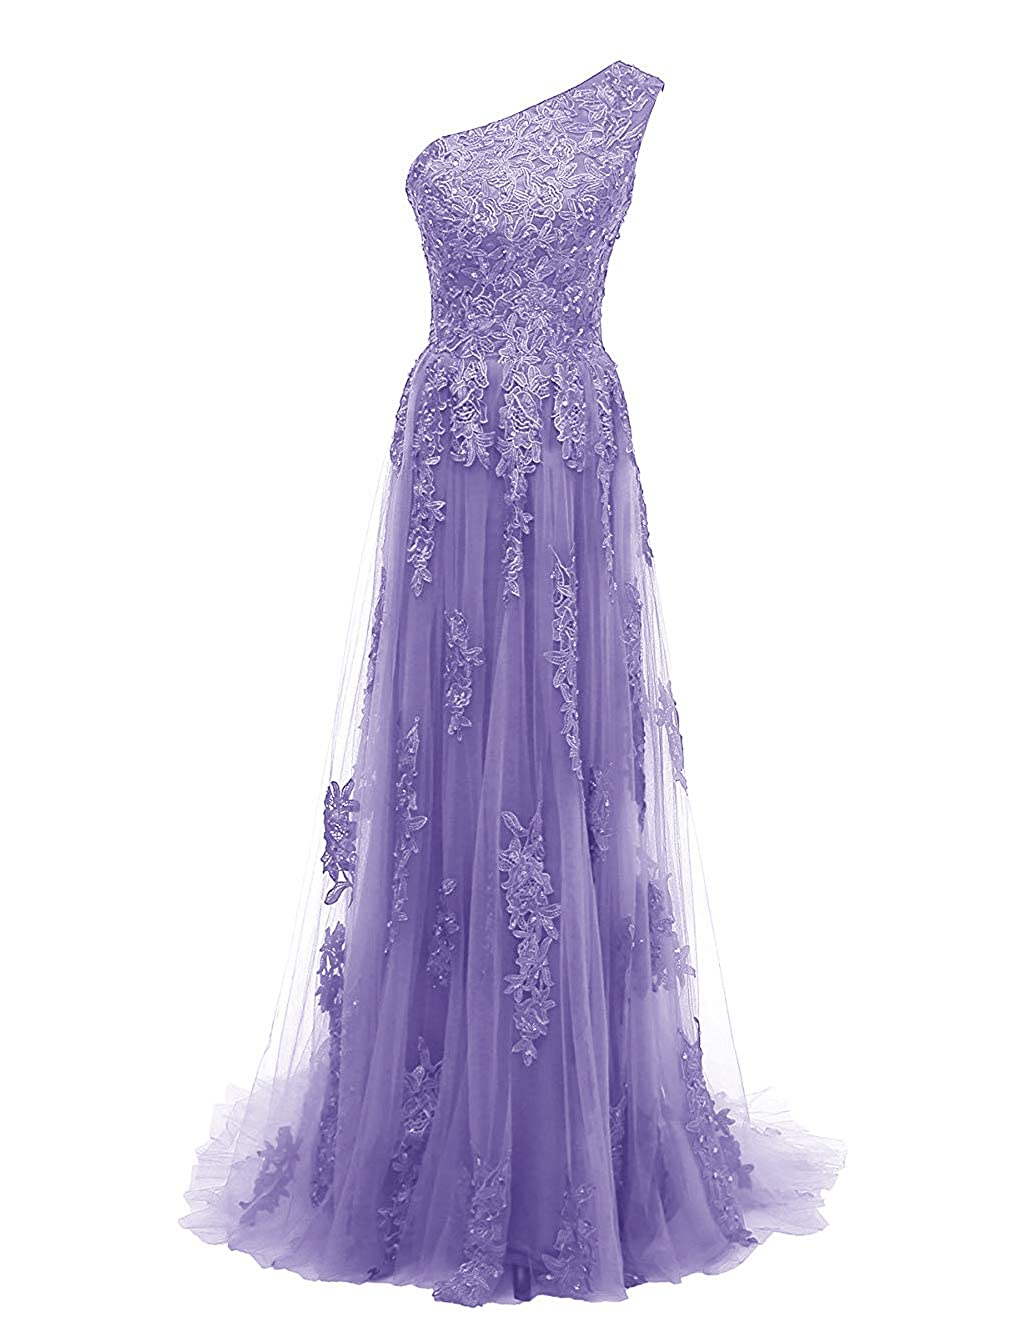 Lavender Uther One Shoulder Evening Party Gowns Lace Appliques Women's Formal Long Prom Dresses